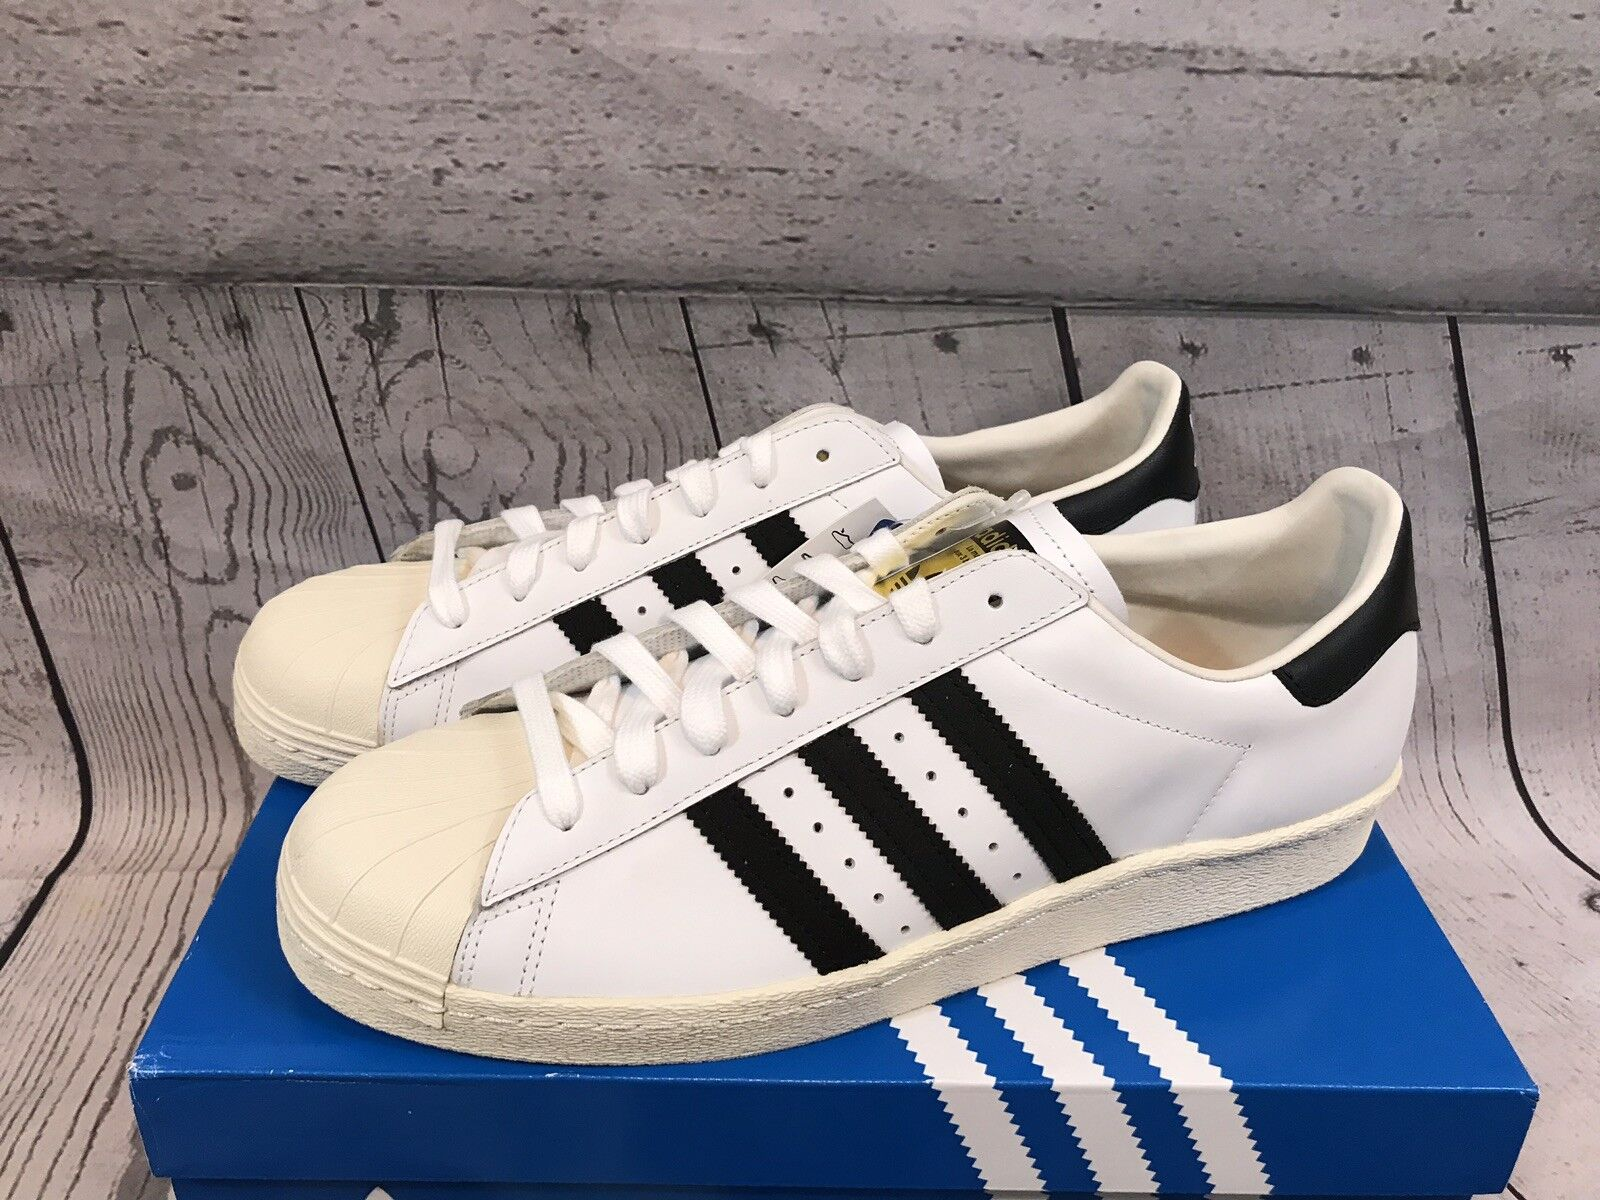 Adidas Originals Mens White Black Superstar 80s Sneakers shoes Size 13 NWT